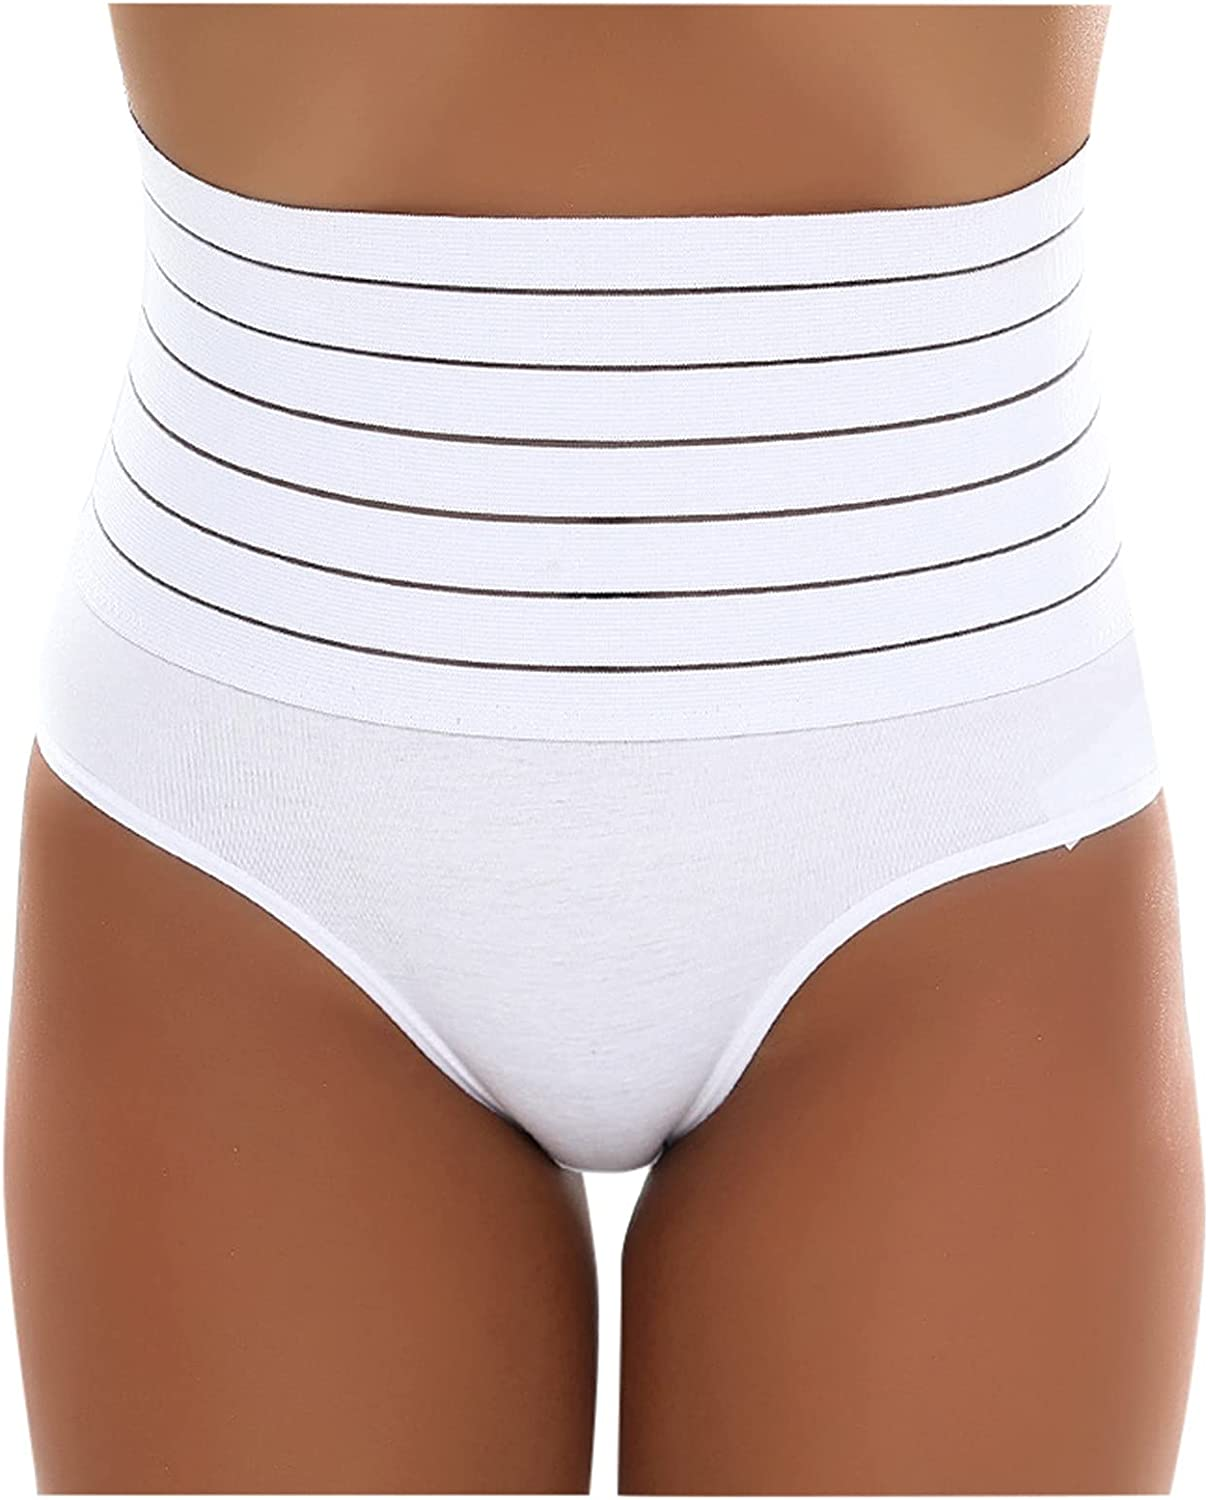 BHSJ New Hot Panties for Women Lace Lace-up Panty Sexy Waist Tummy Control Underwear Briefs Ladies Soft Underpants